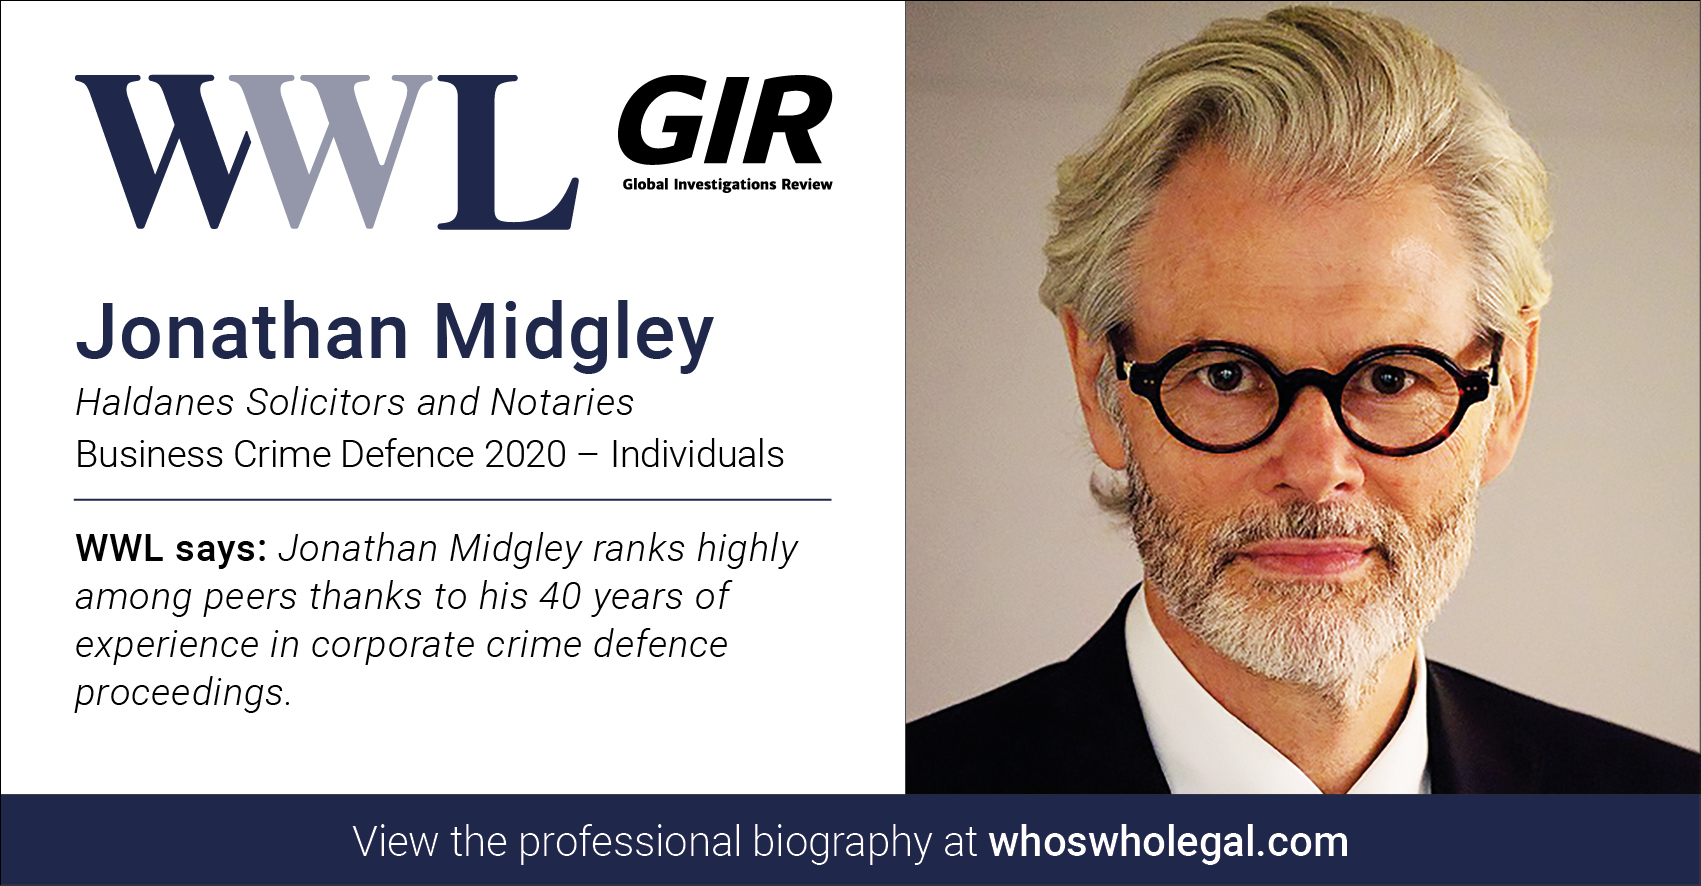 Jonathan Midgley Social Media Card Indiciduals - Haldanes recognised in Who's Who Legal Business Crime Defence 2020